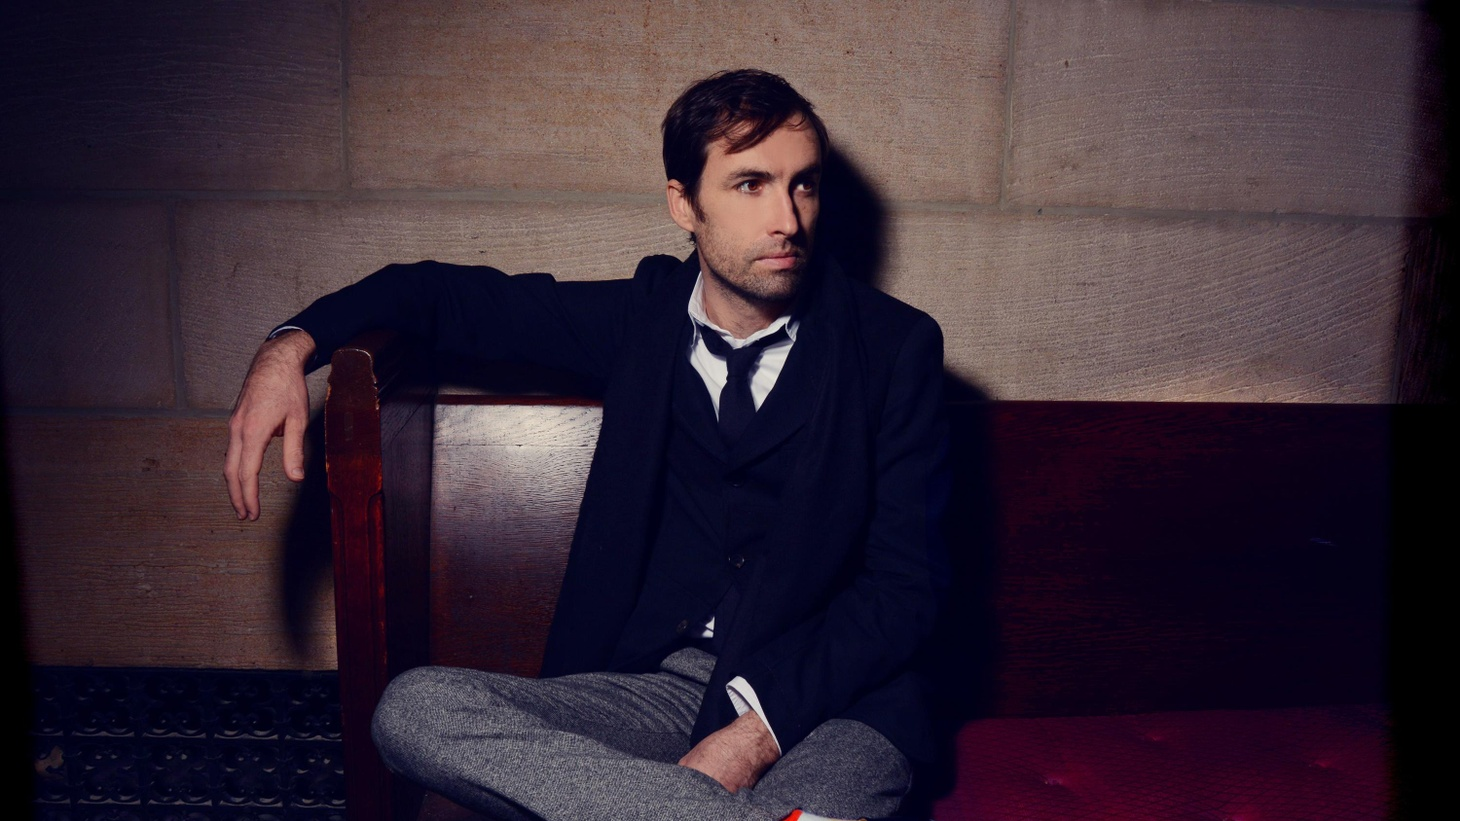 Musical genius Andrew Bird took an interesting approach to writing his new EP. He treated it as though it were a movie and created a score around it.